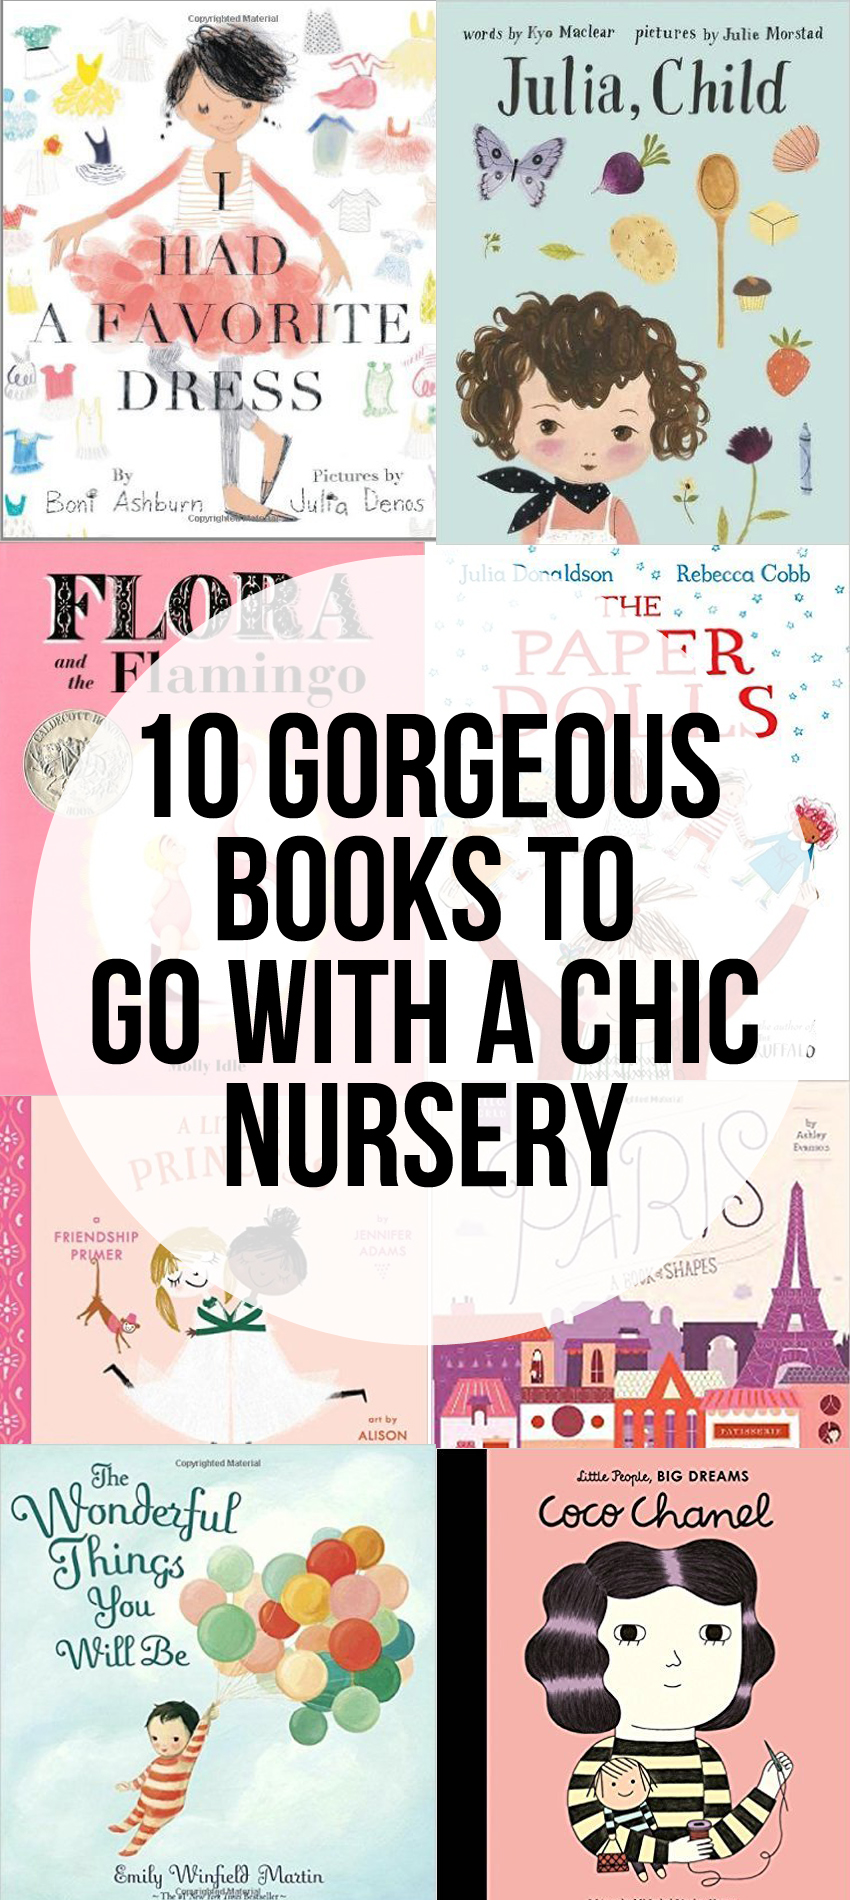 10 Gorgeous Books To Go With A Chic Nursery - great for decorating a little girls room (plus their just great books!).